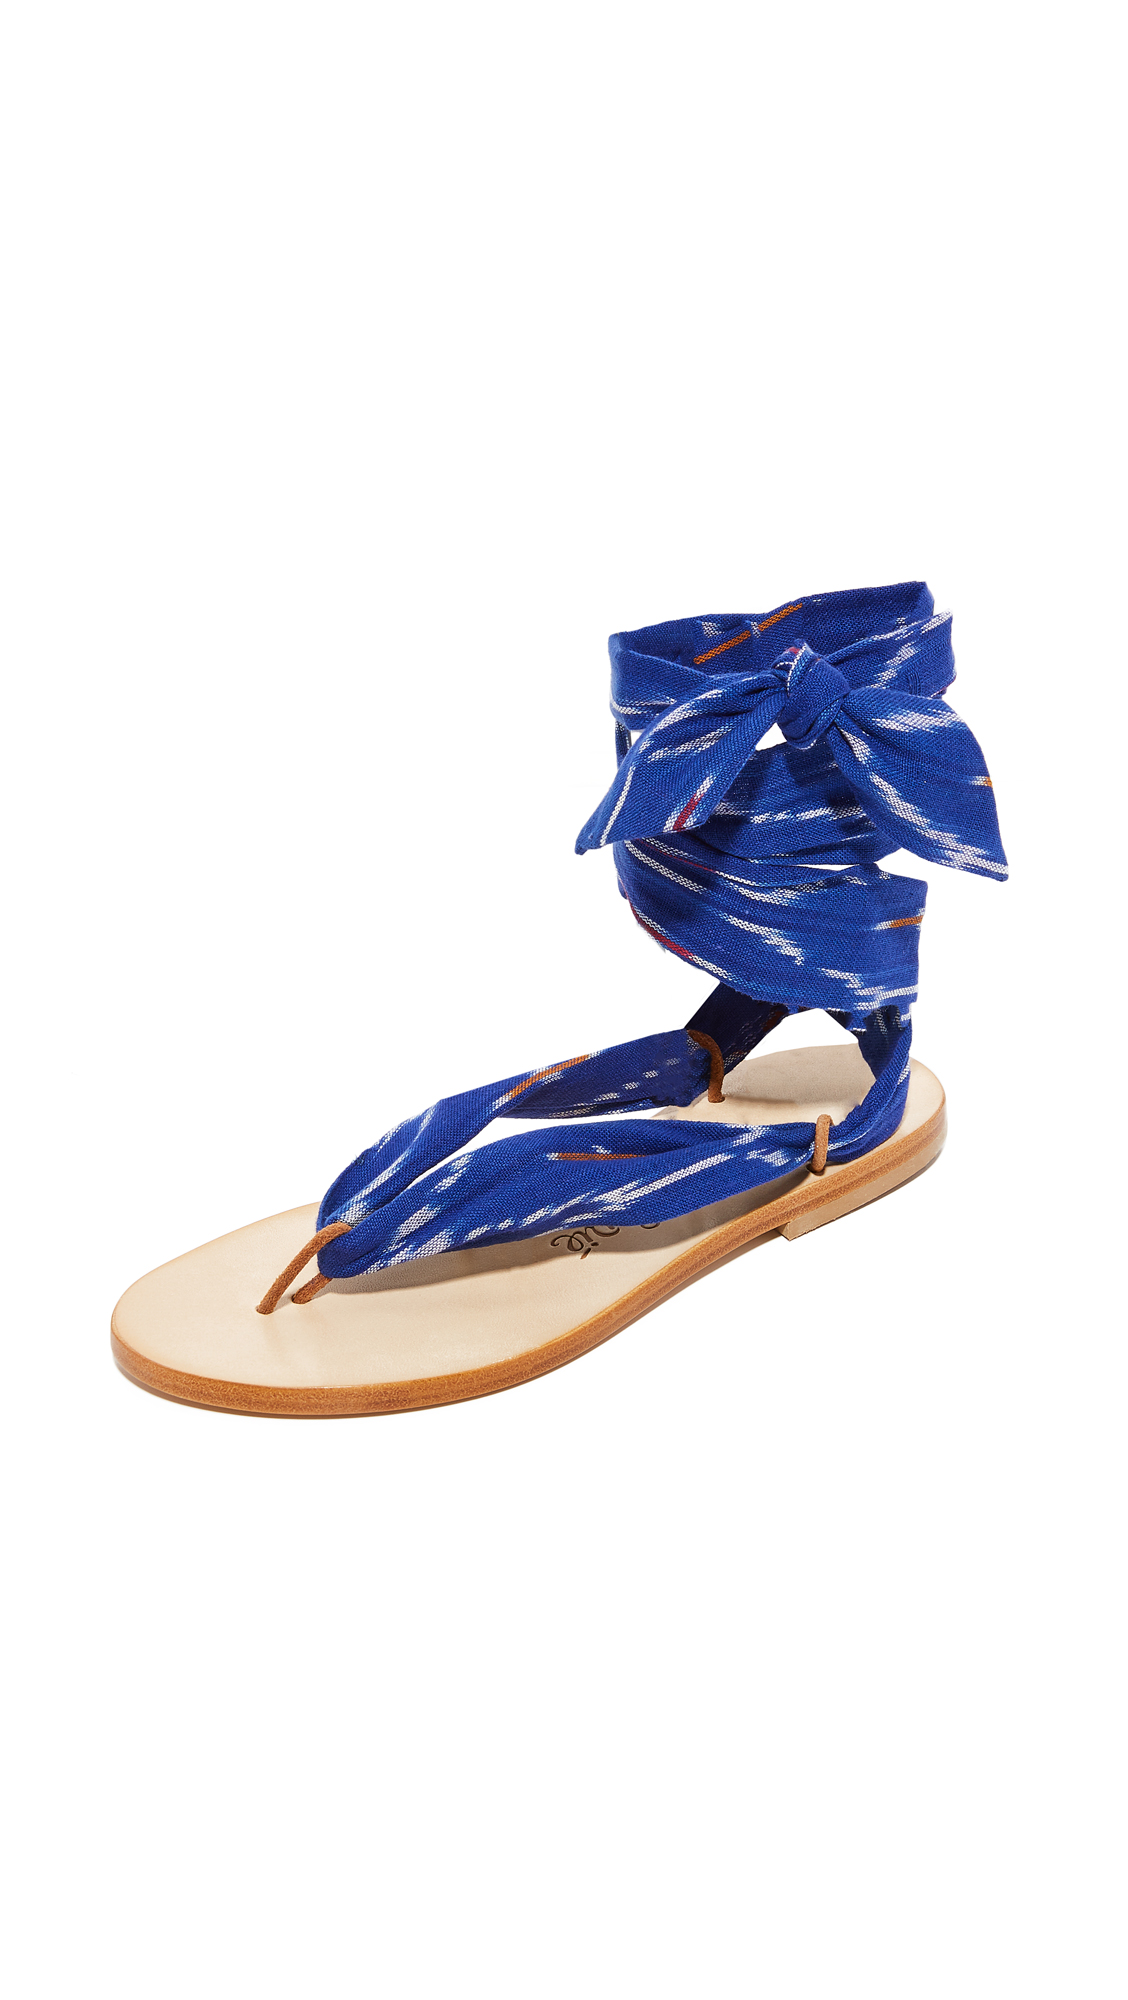 Nupie Nupie Wrap Sandals - Ikat Bleu/Natural